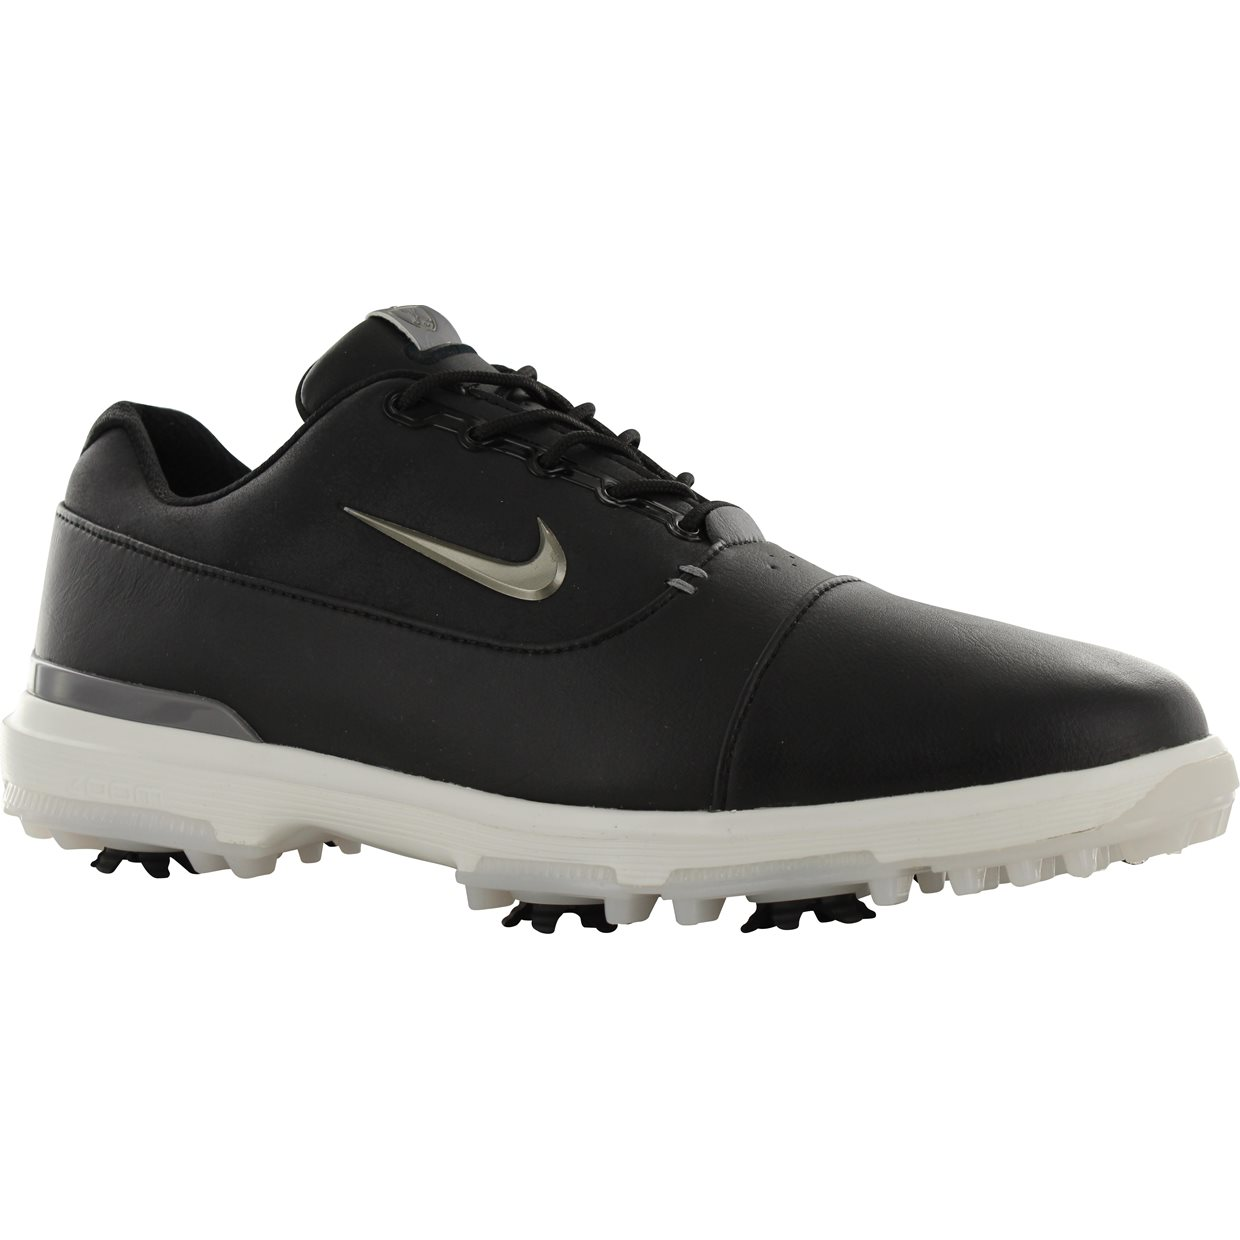 106a9c034242 Nike Air Zoom victory Pro Golf Shoes at GlobalGolf.com